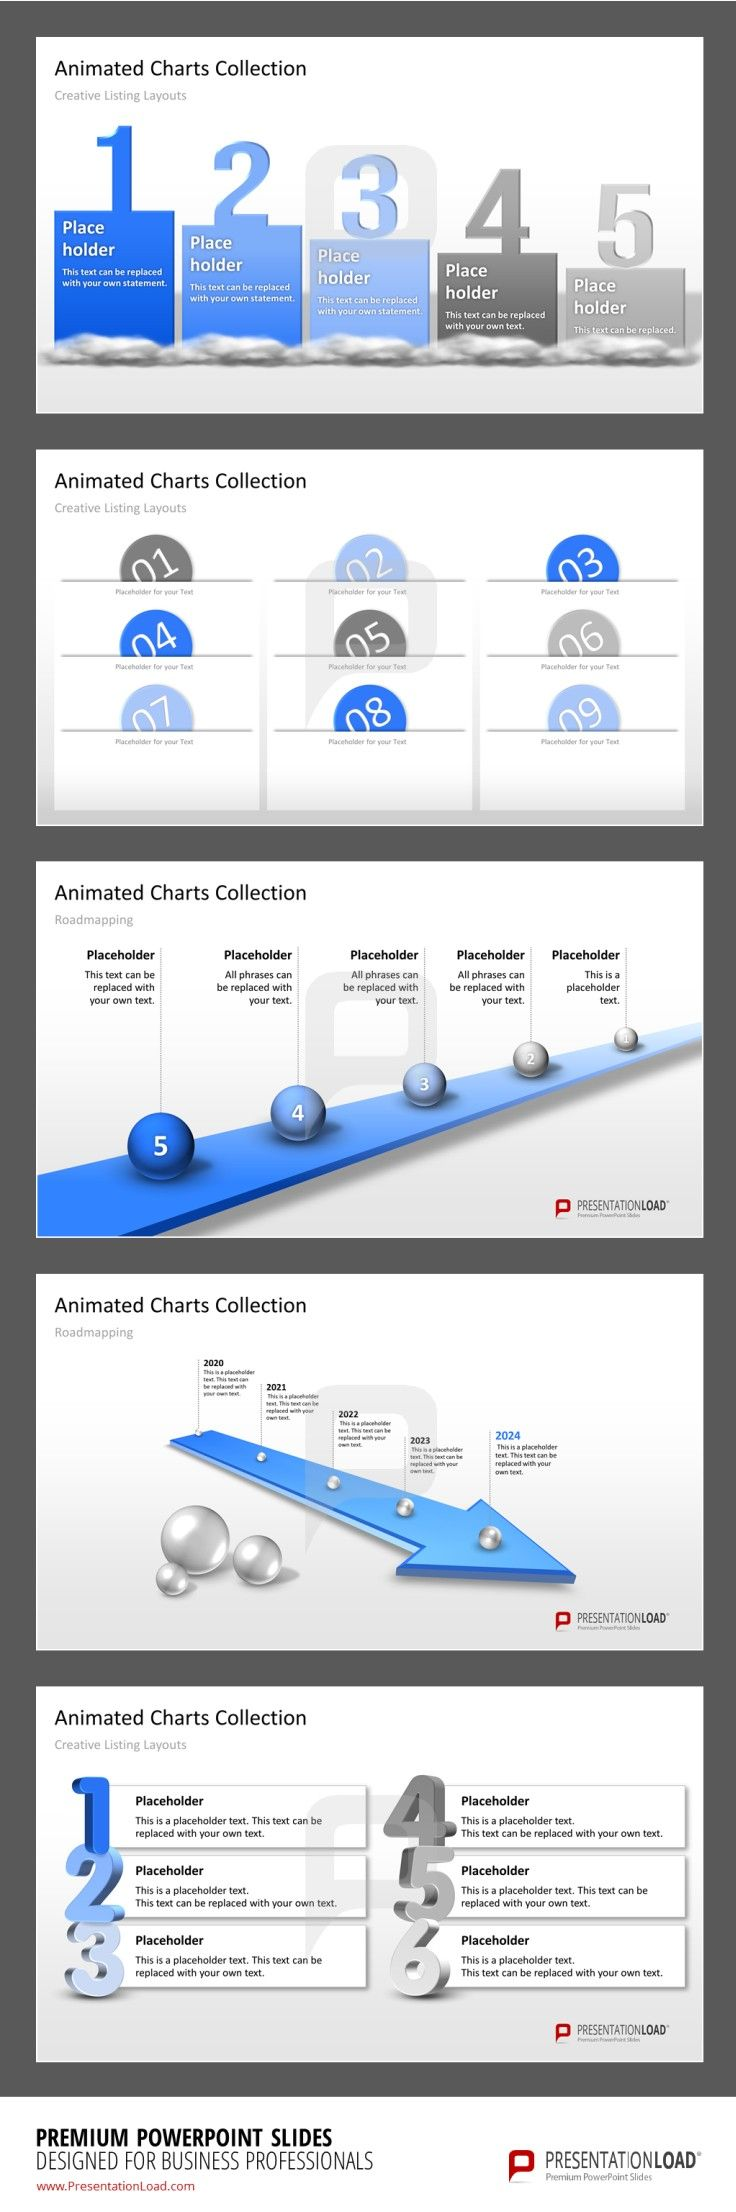 Animated powerpoint templates the animated charts collection for animated powerpoint templates the animated charts collection for powerpoint contains animated objects for creative listing layouts in different customizable toneelgroepblik Choice Image